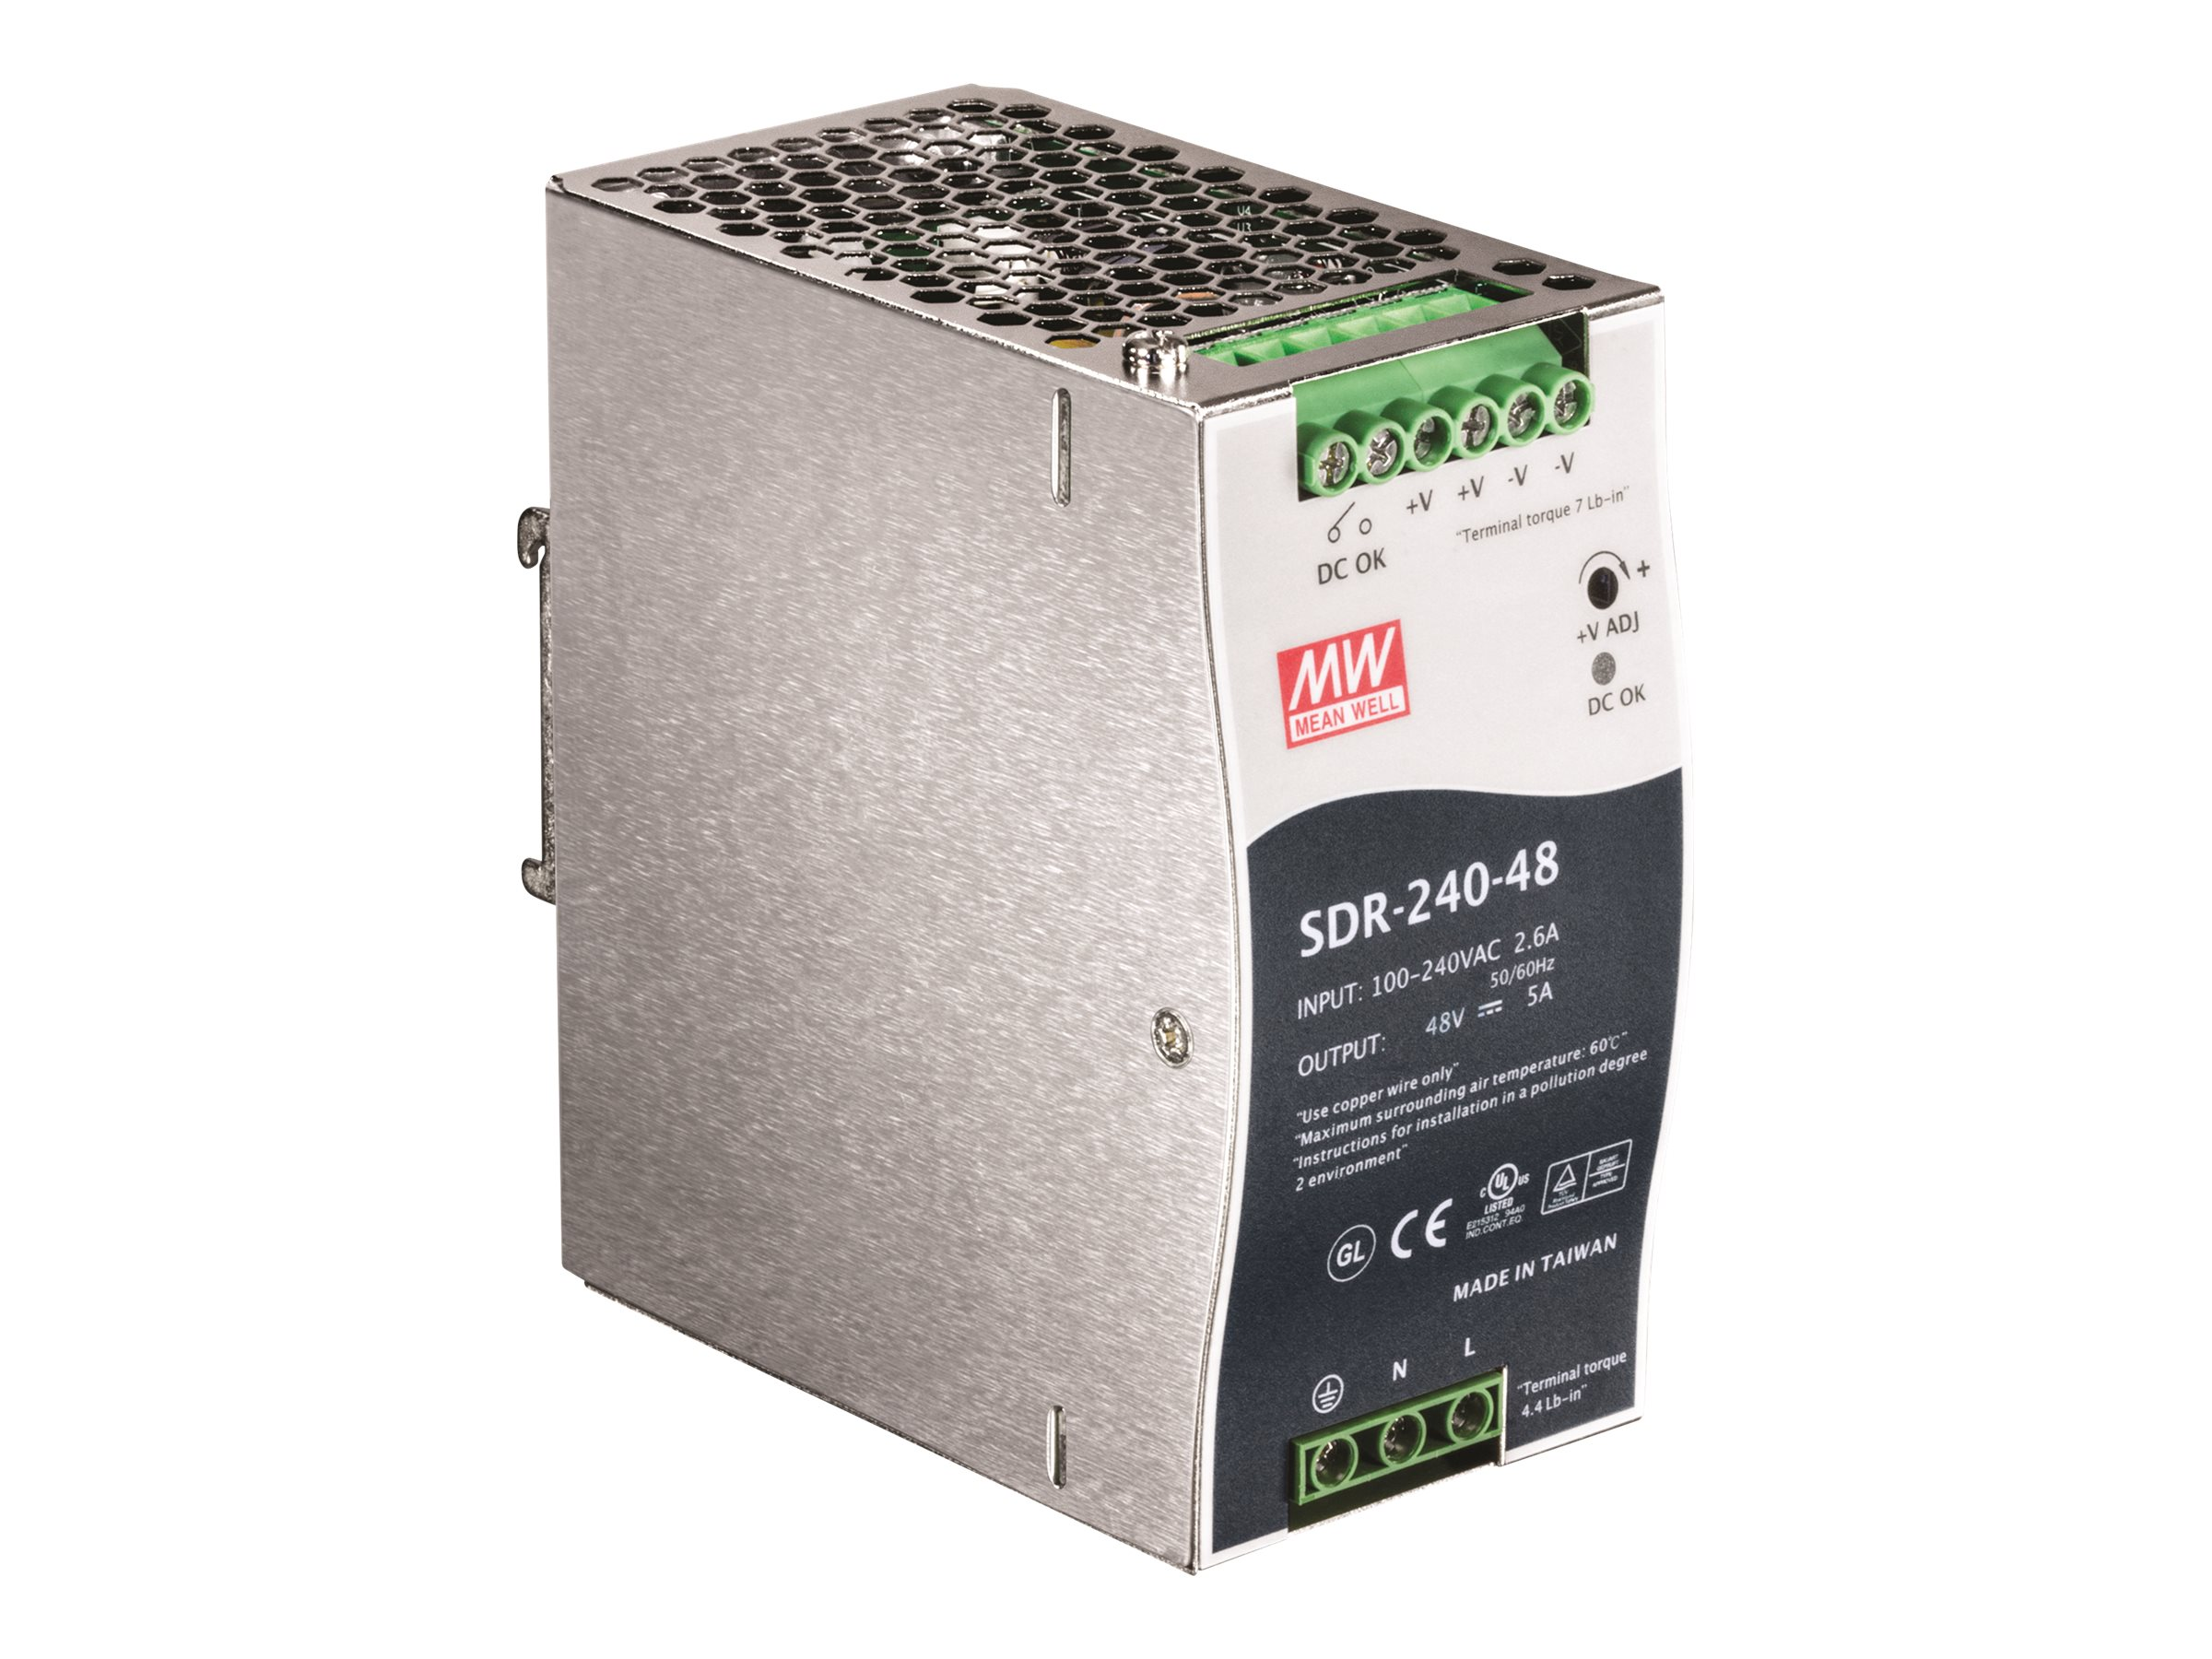 TRENDnet 240W Single Output Industrial DIN-Rail Power Supply